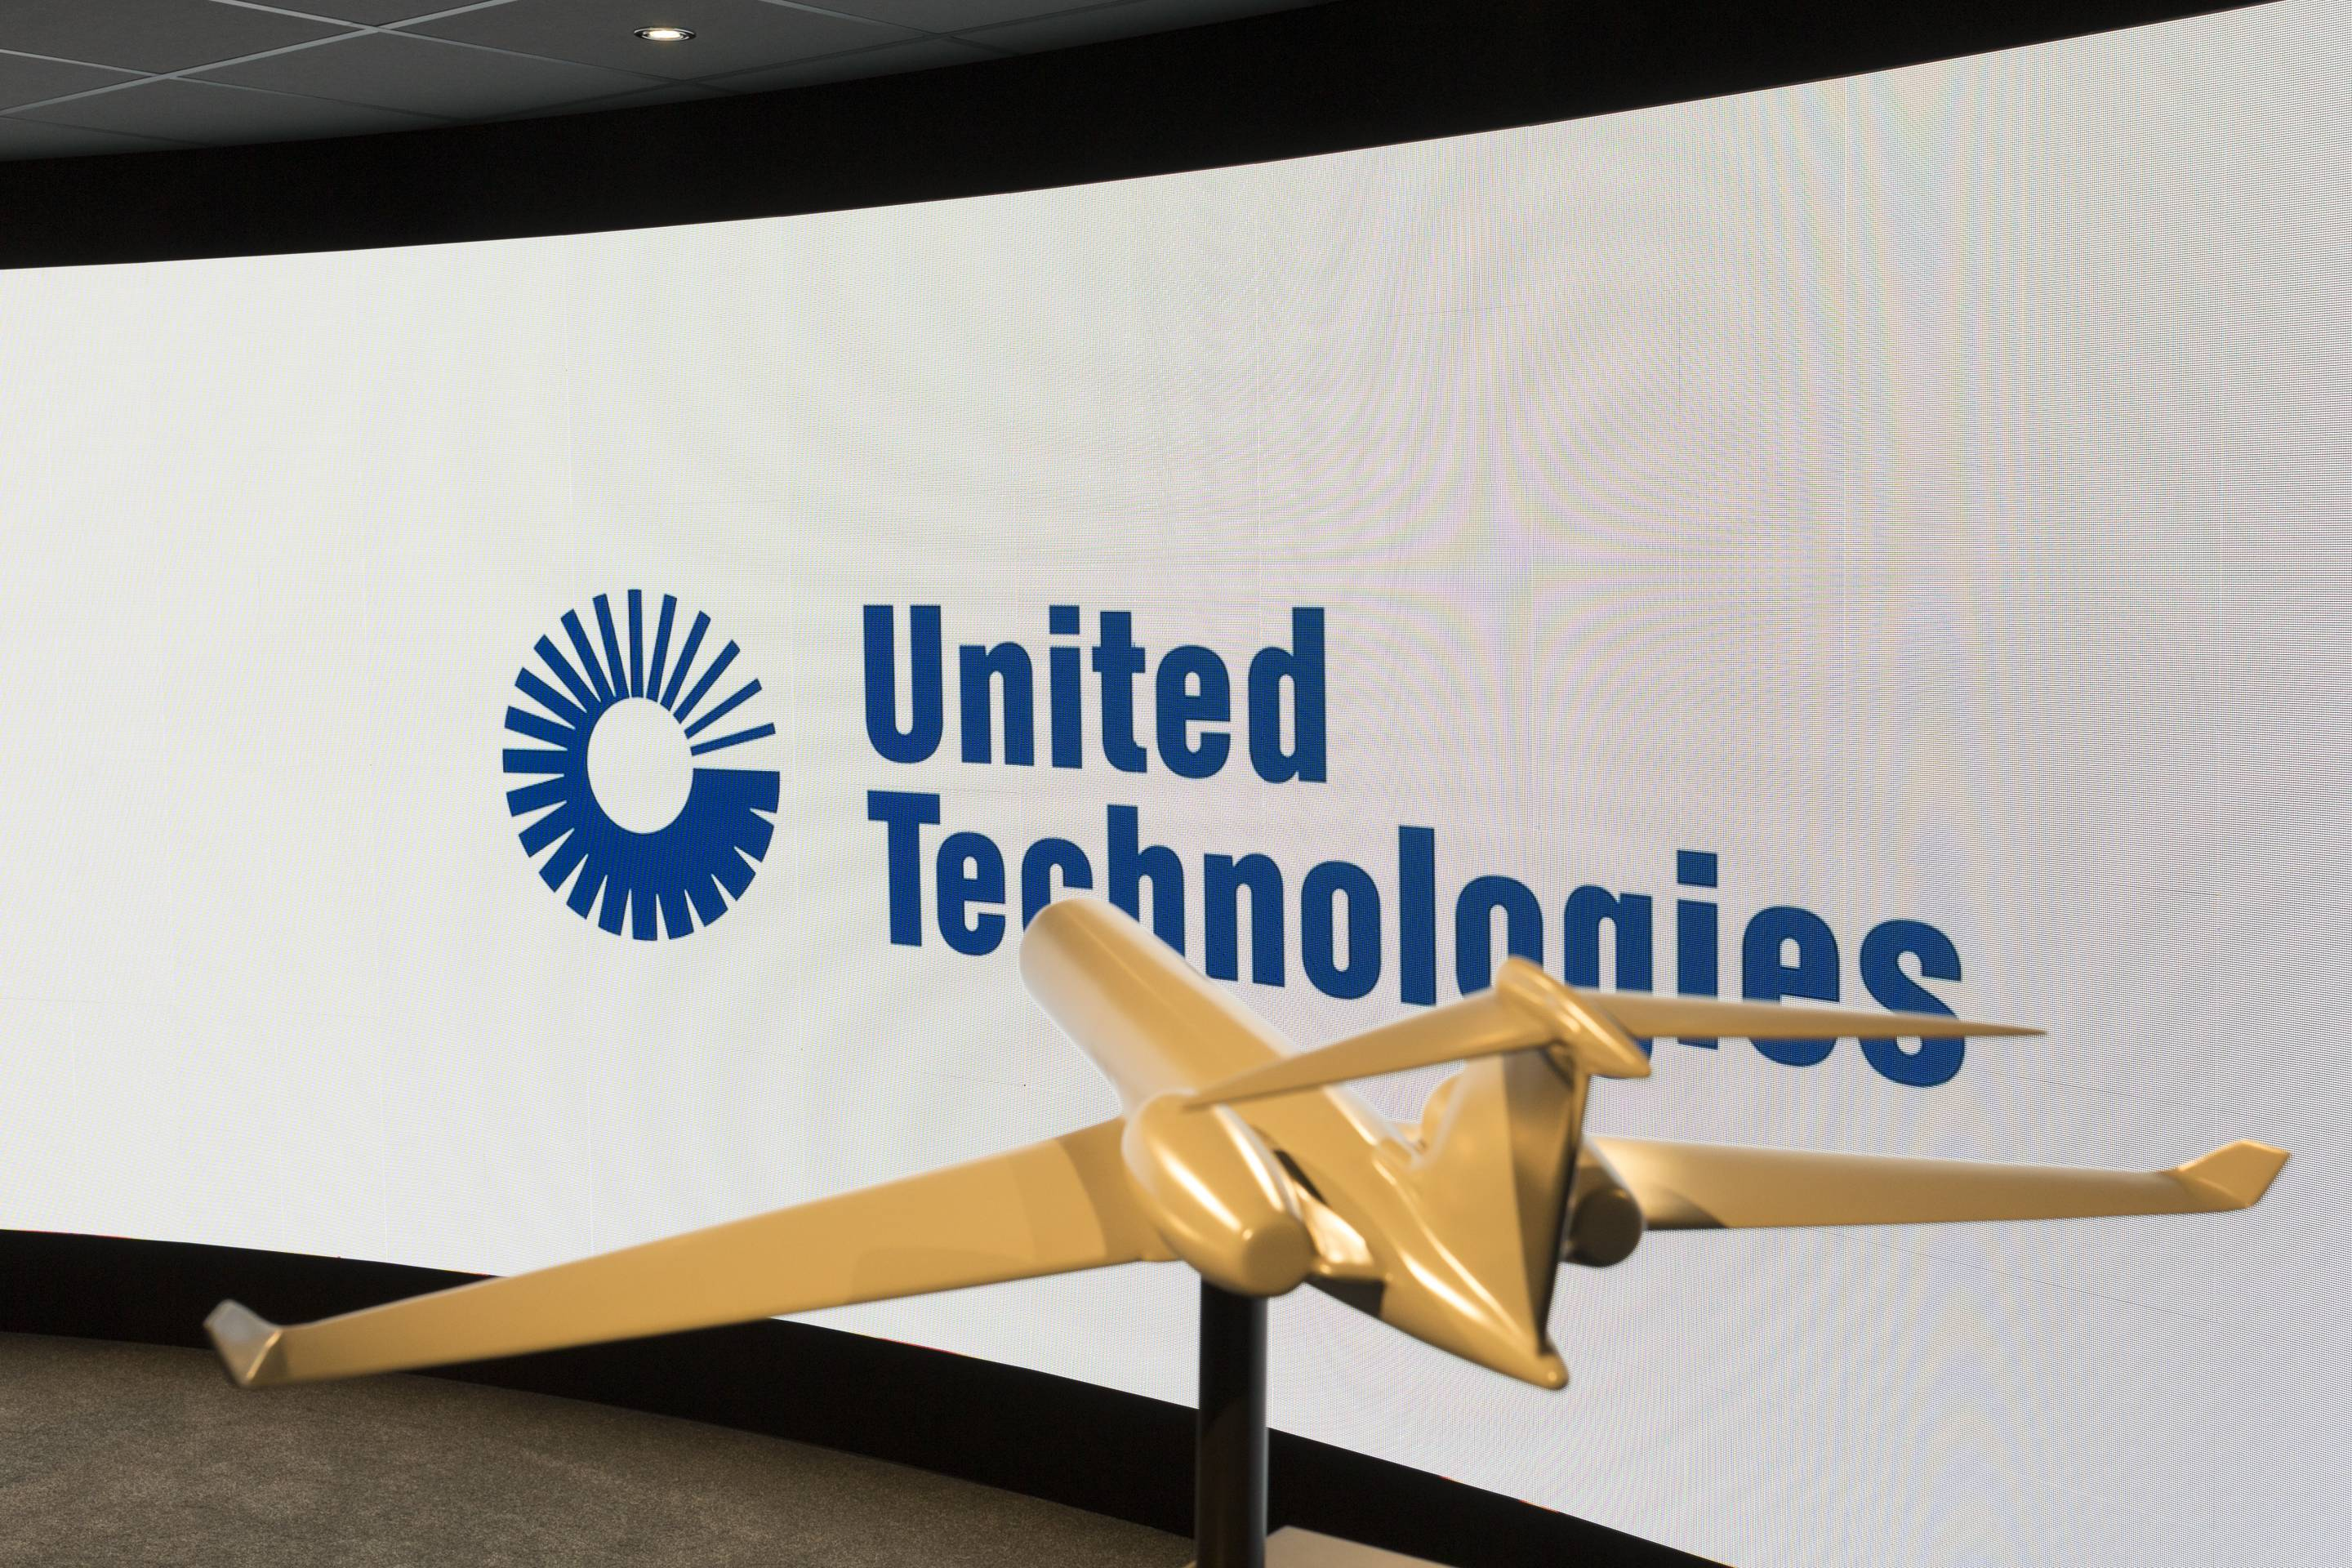 United Technologies Presentation Screen